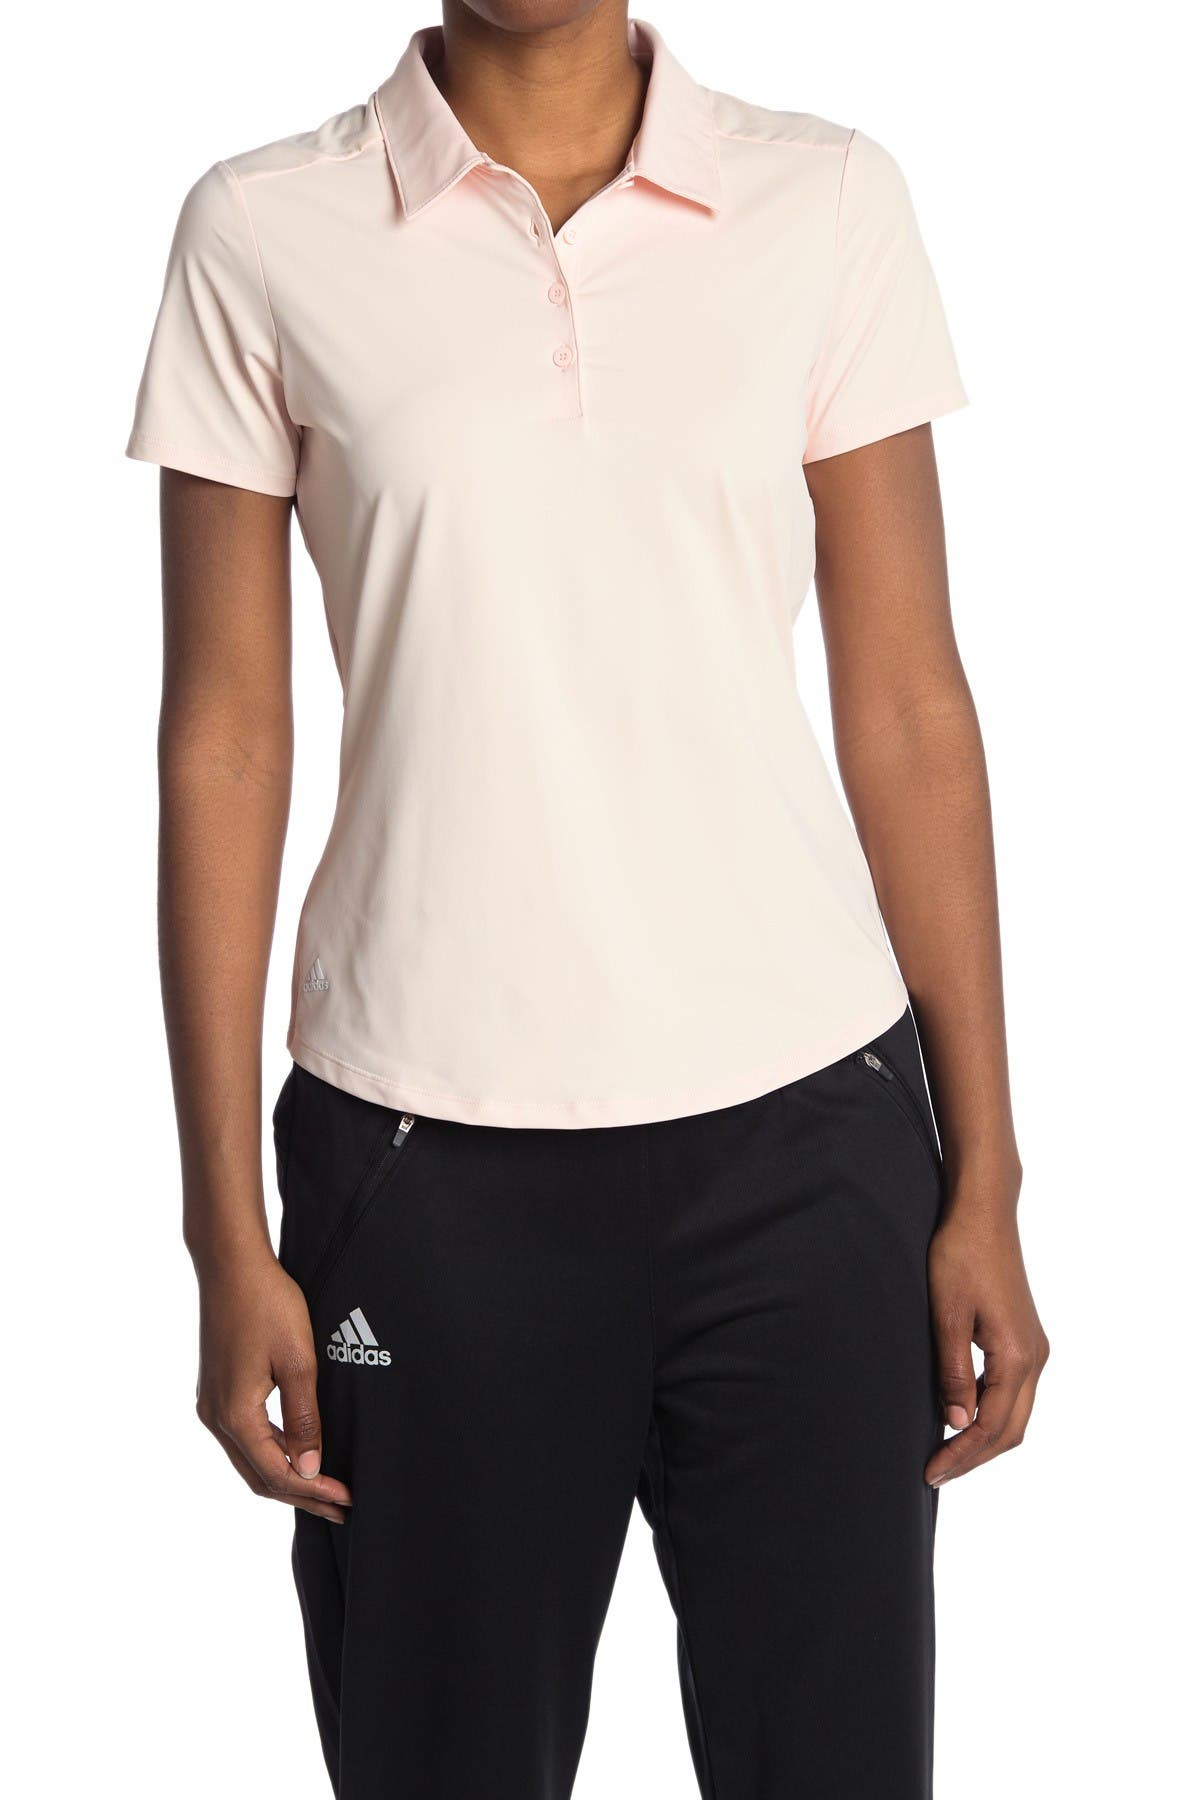 Image of Adidas Golf Ultimate 365 Short Sleeve Polo